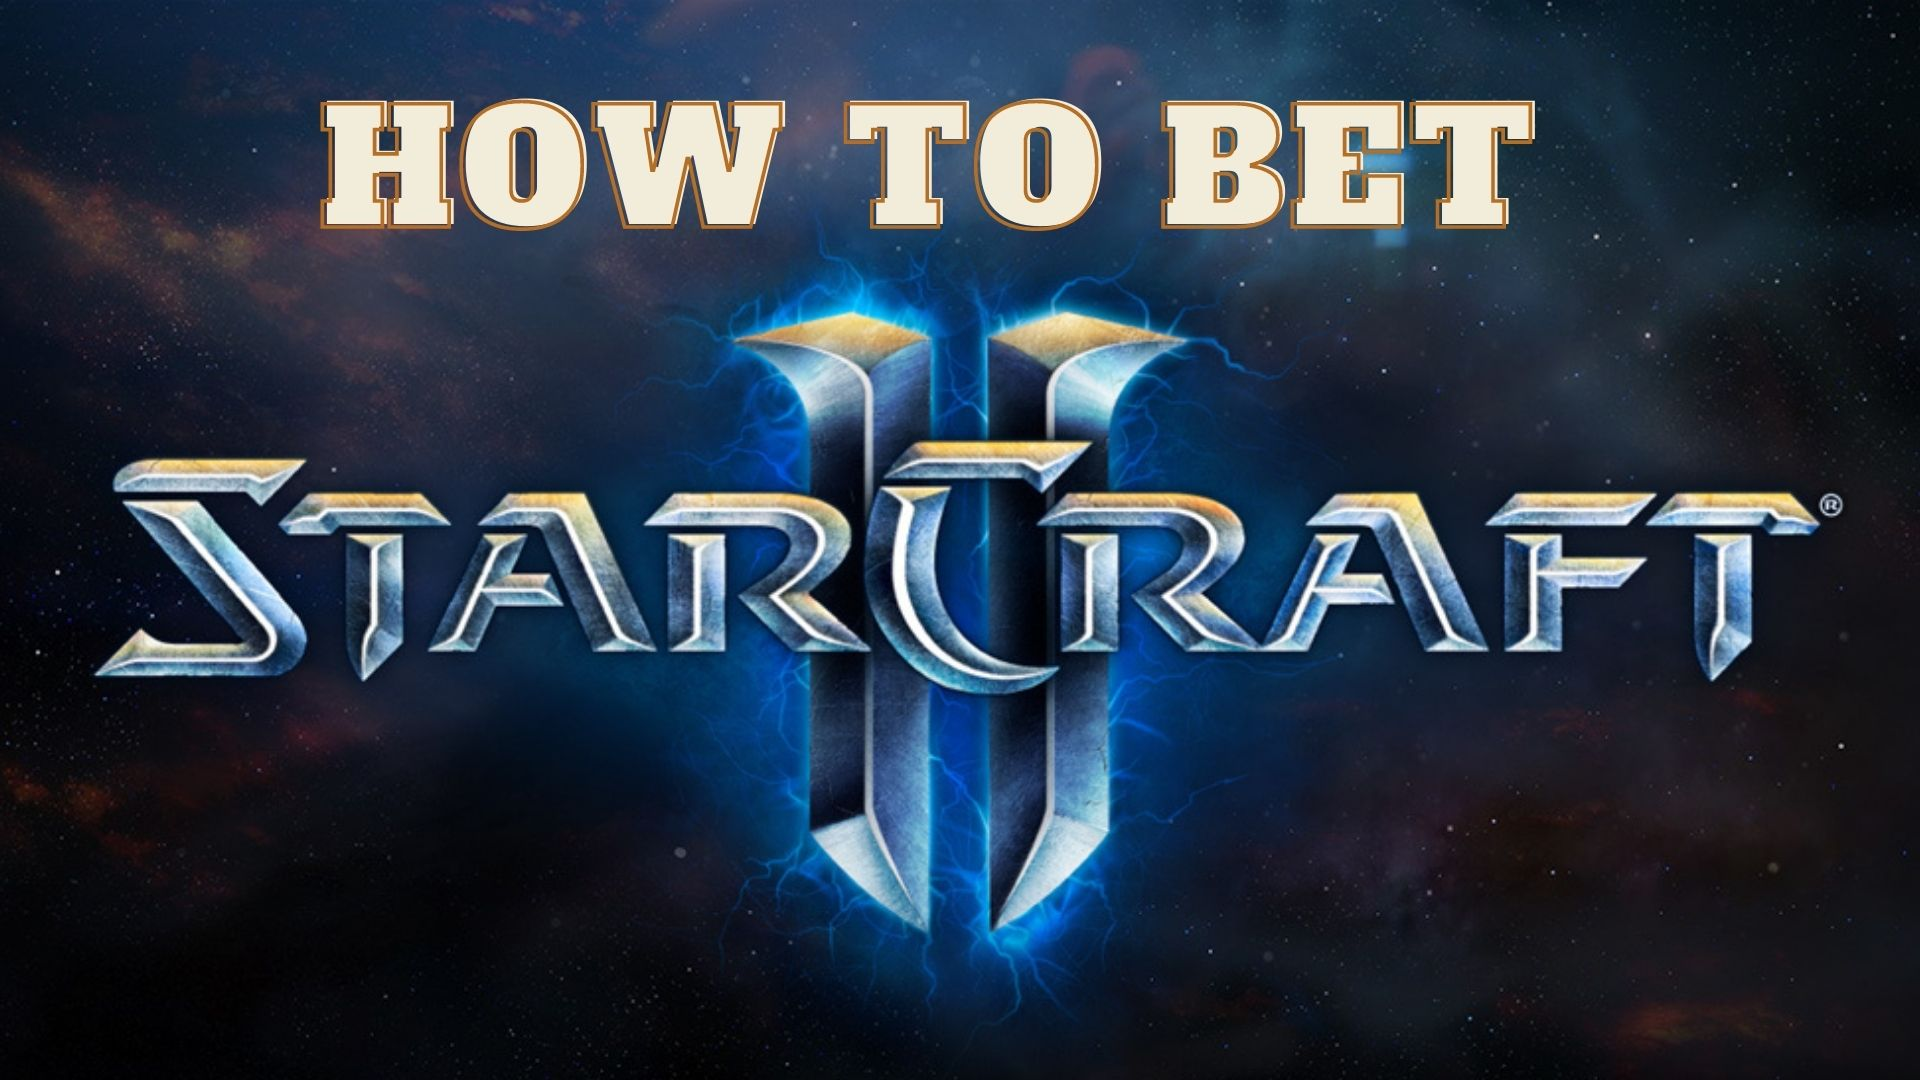 How to bet on StarCraft II